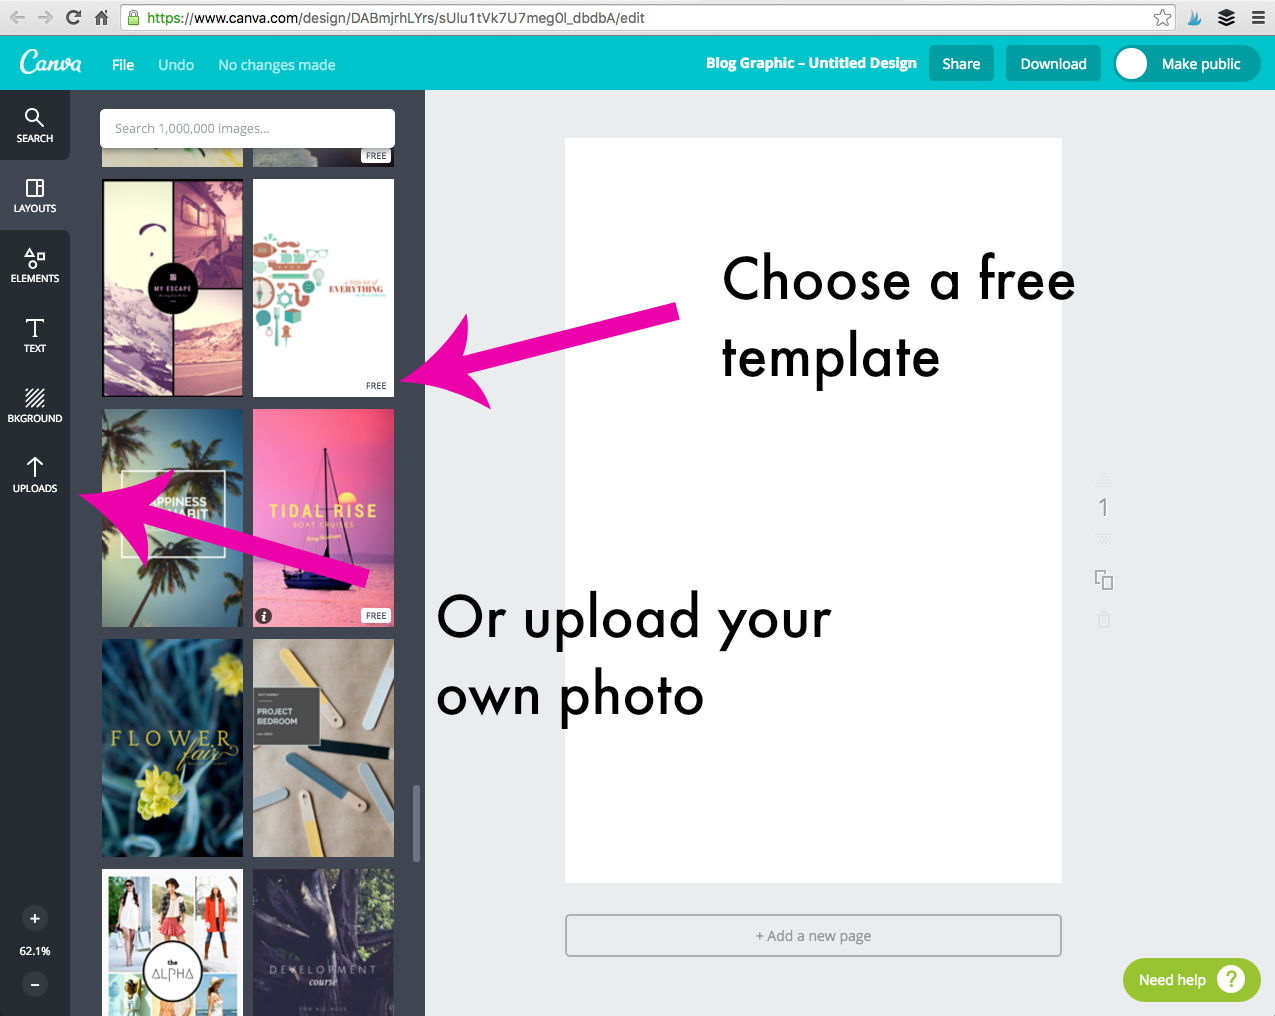 Bridgid Gallagher - How to Make a Blog Post Image Template